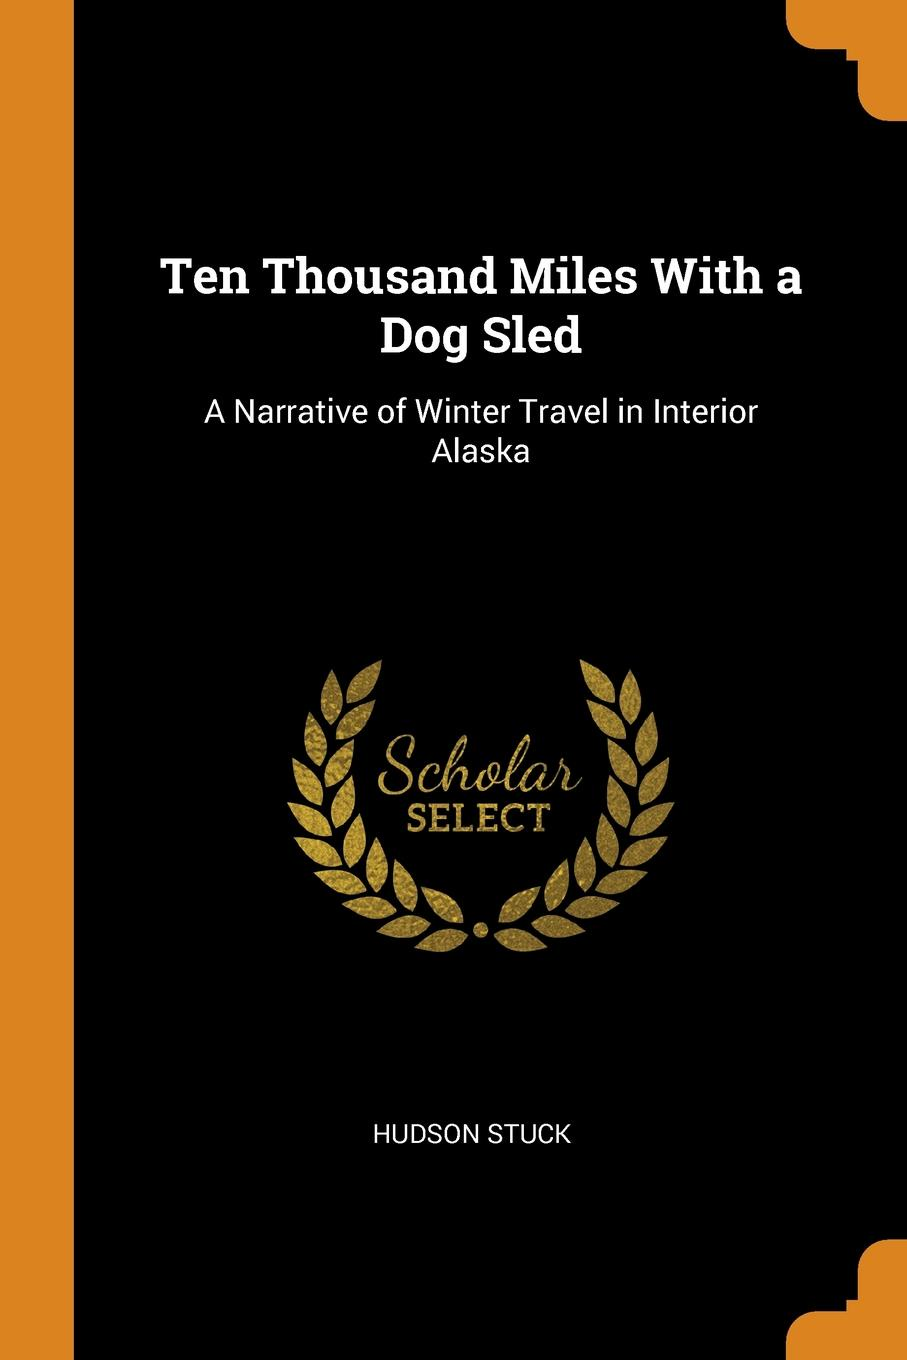 Hudson Stuck. Ten Thousand Miles With a Dog Sled. A Narrative of Winter Travel in Interior Alaska